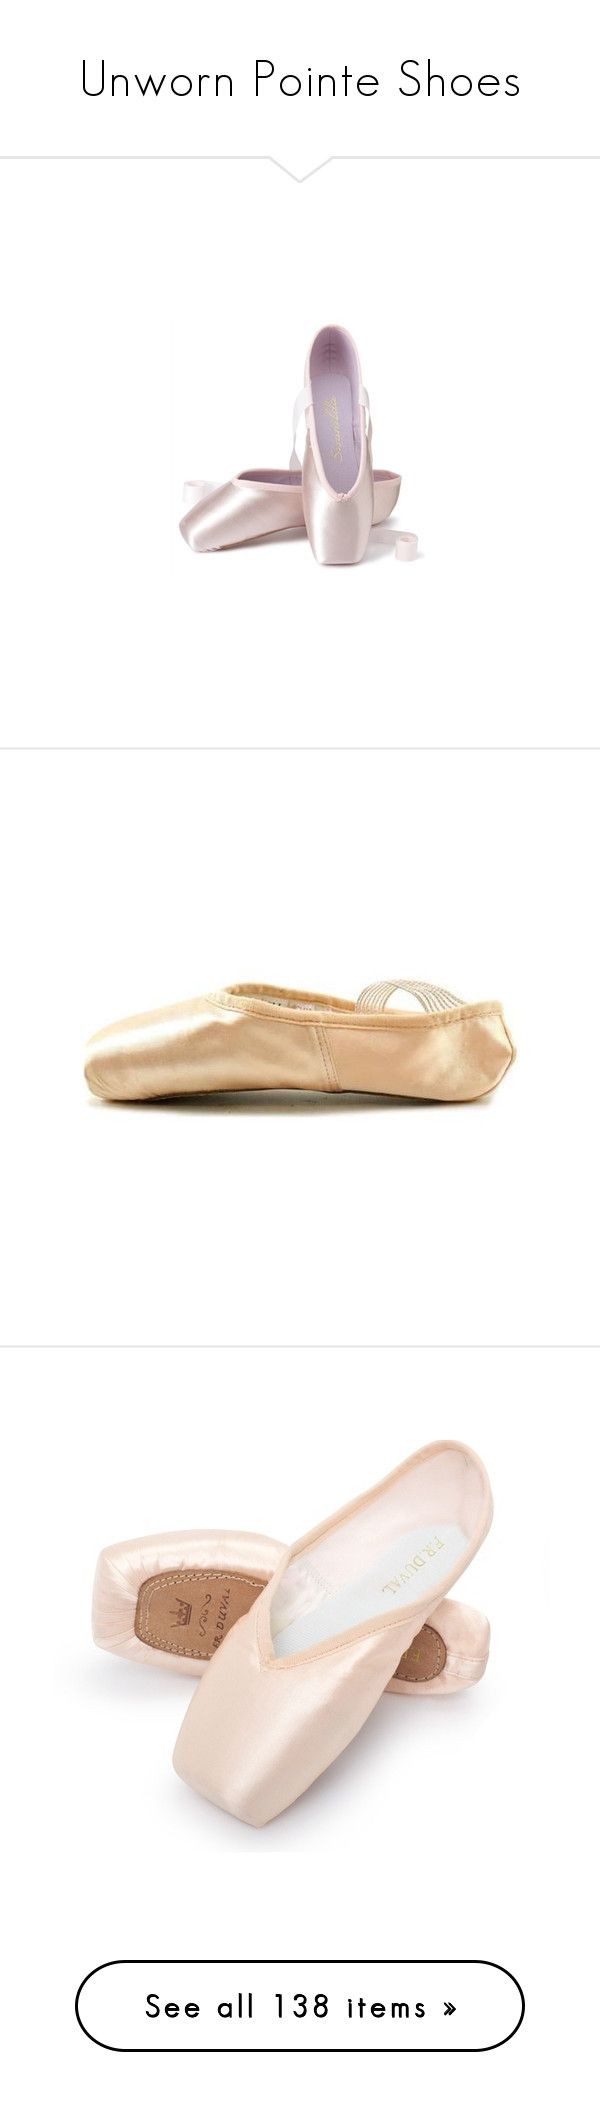 """Unworn Pointe Shoes"" by gymholic ❤ liked on Polyvore featuring shoes, flats, ballet, dance, ballerina shoes, flat pump shoes, ballet shoes, ballet flats, flat heel shoes and pointed ballet shoes"